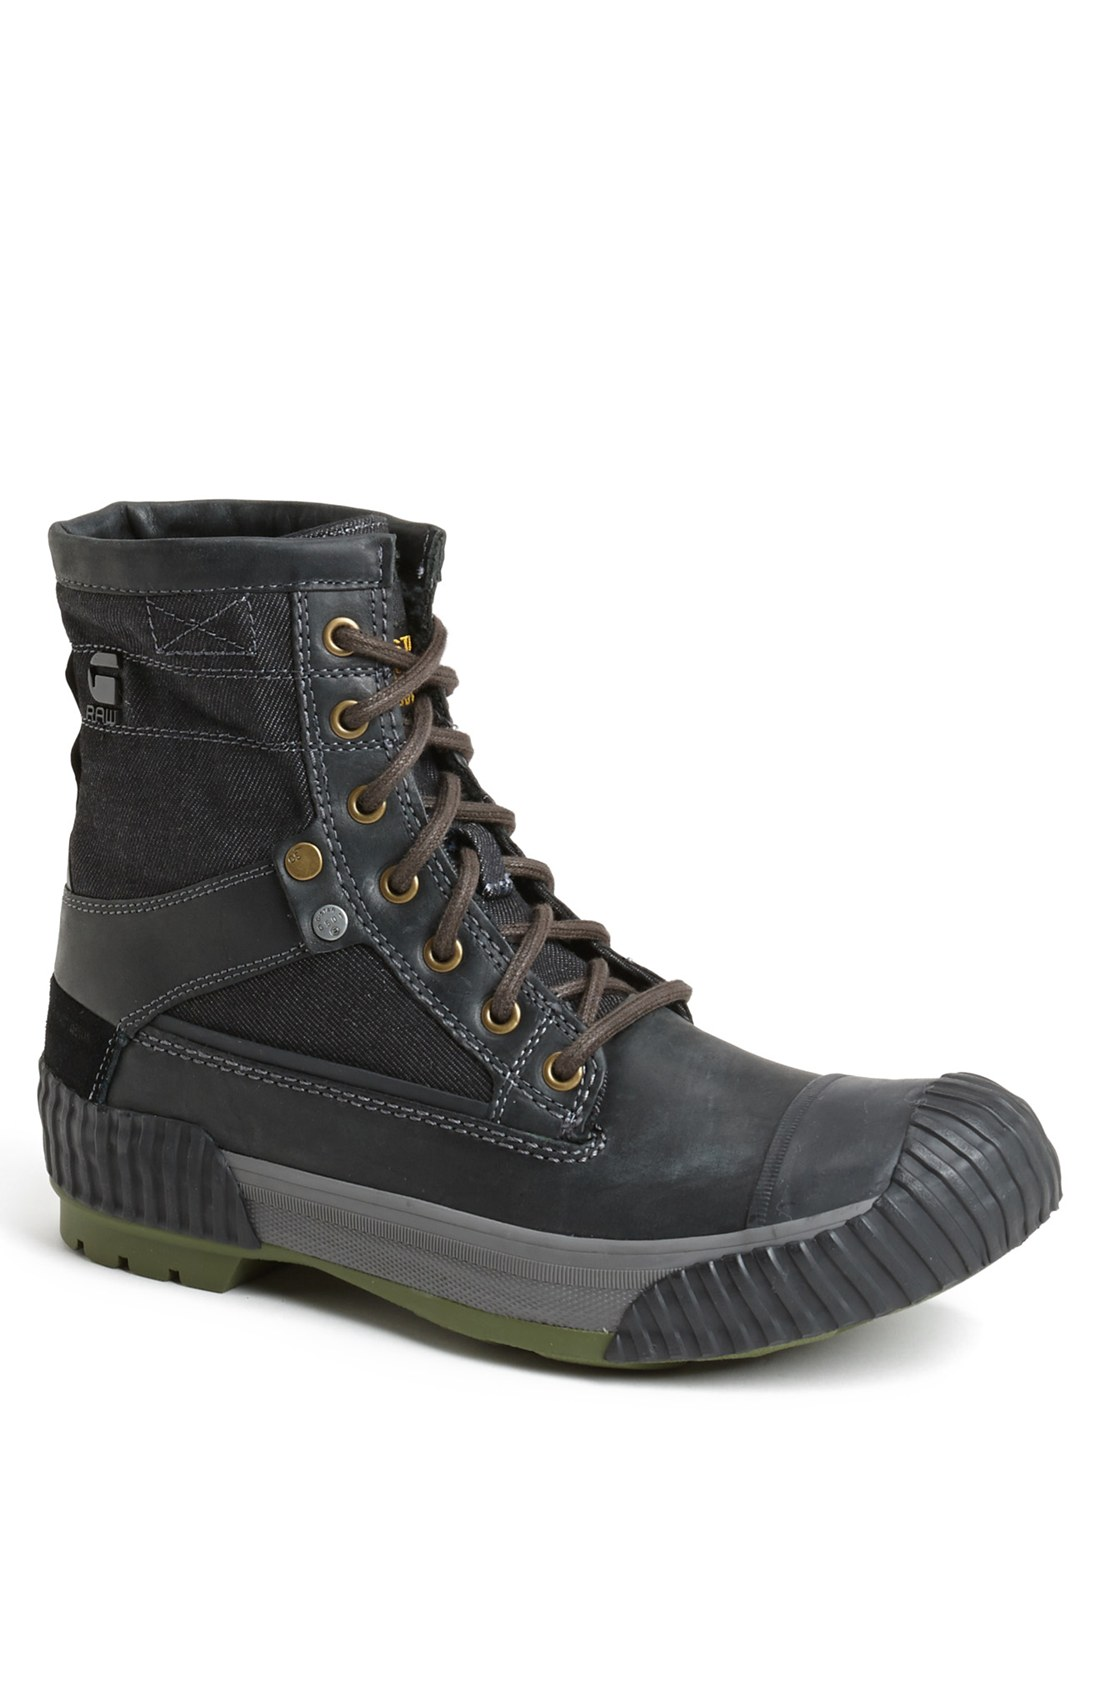 g star raw marker mix boot in black for men lyst. Black Bedroom Furniture Sets. Home Design Ideas